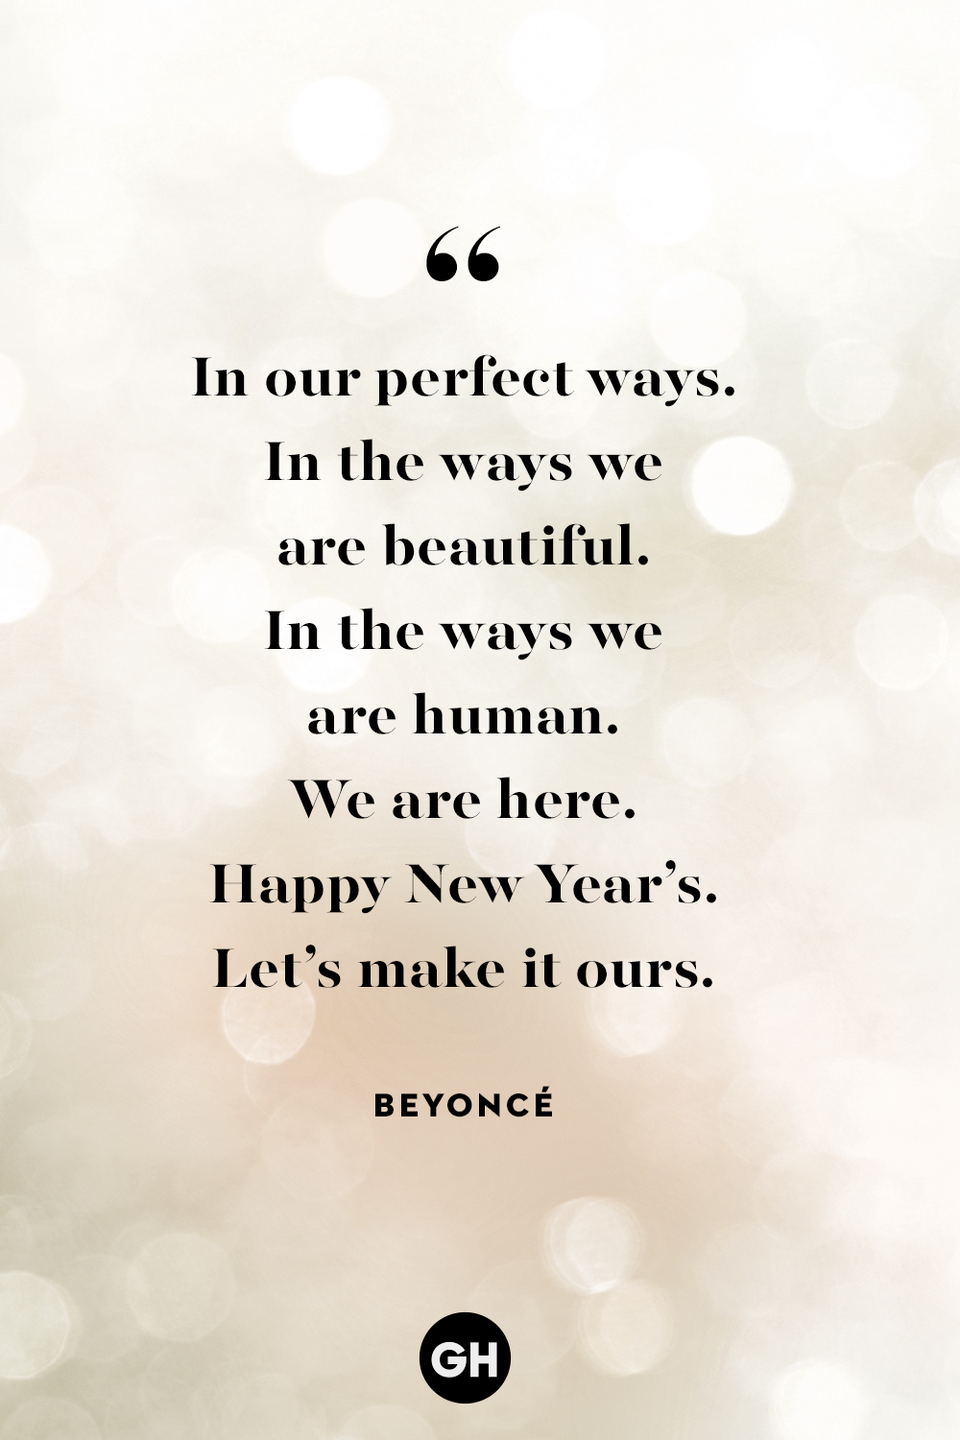 <p>In our perfect ways. In the ways we are beautiful. In the ways we are human. We are here. Happy New Year's. Let's make it ours.</p>